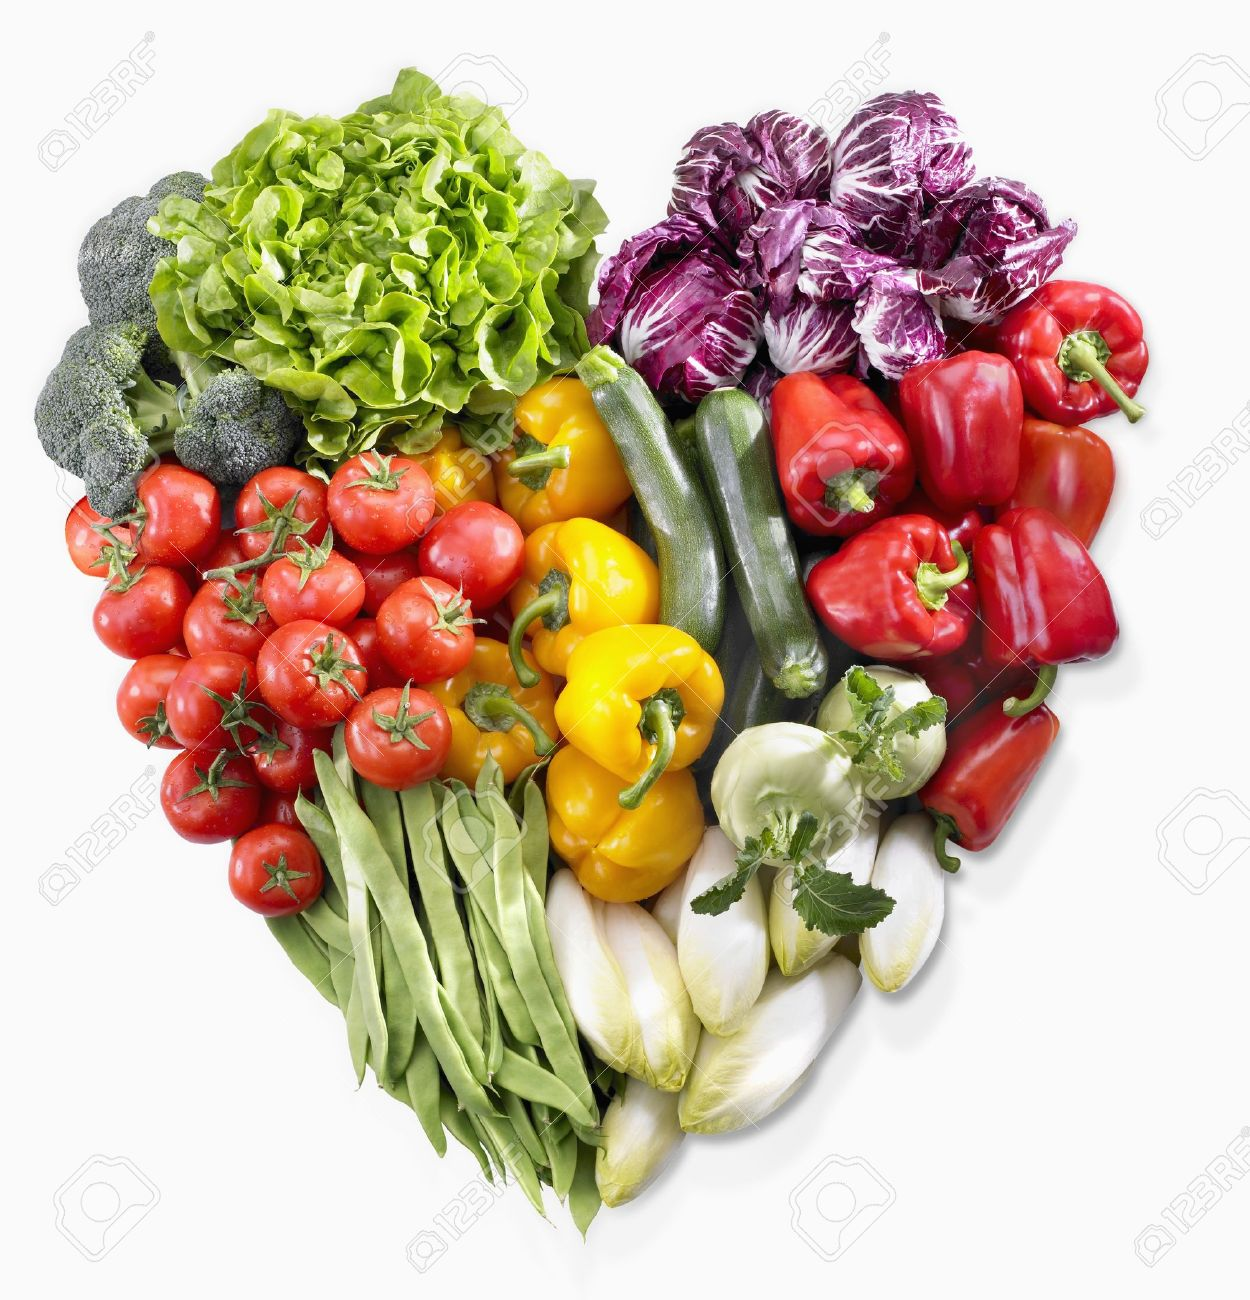 Image result for vegetables heart